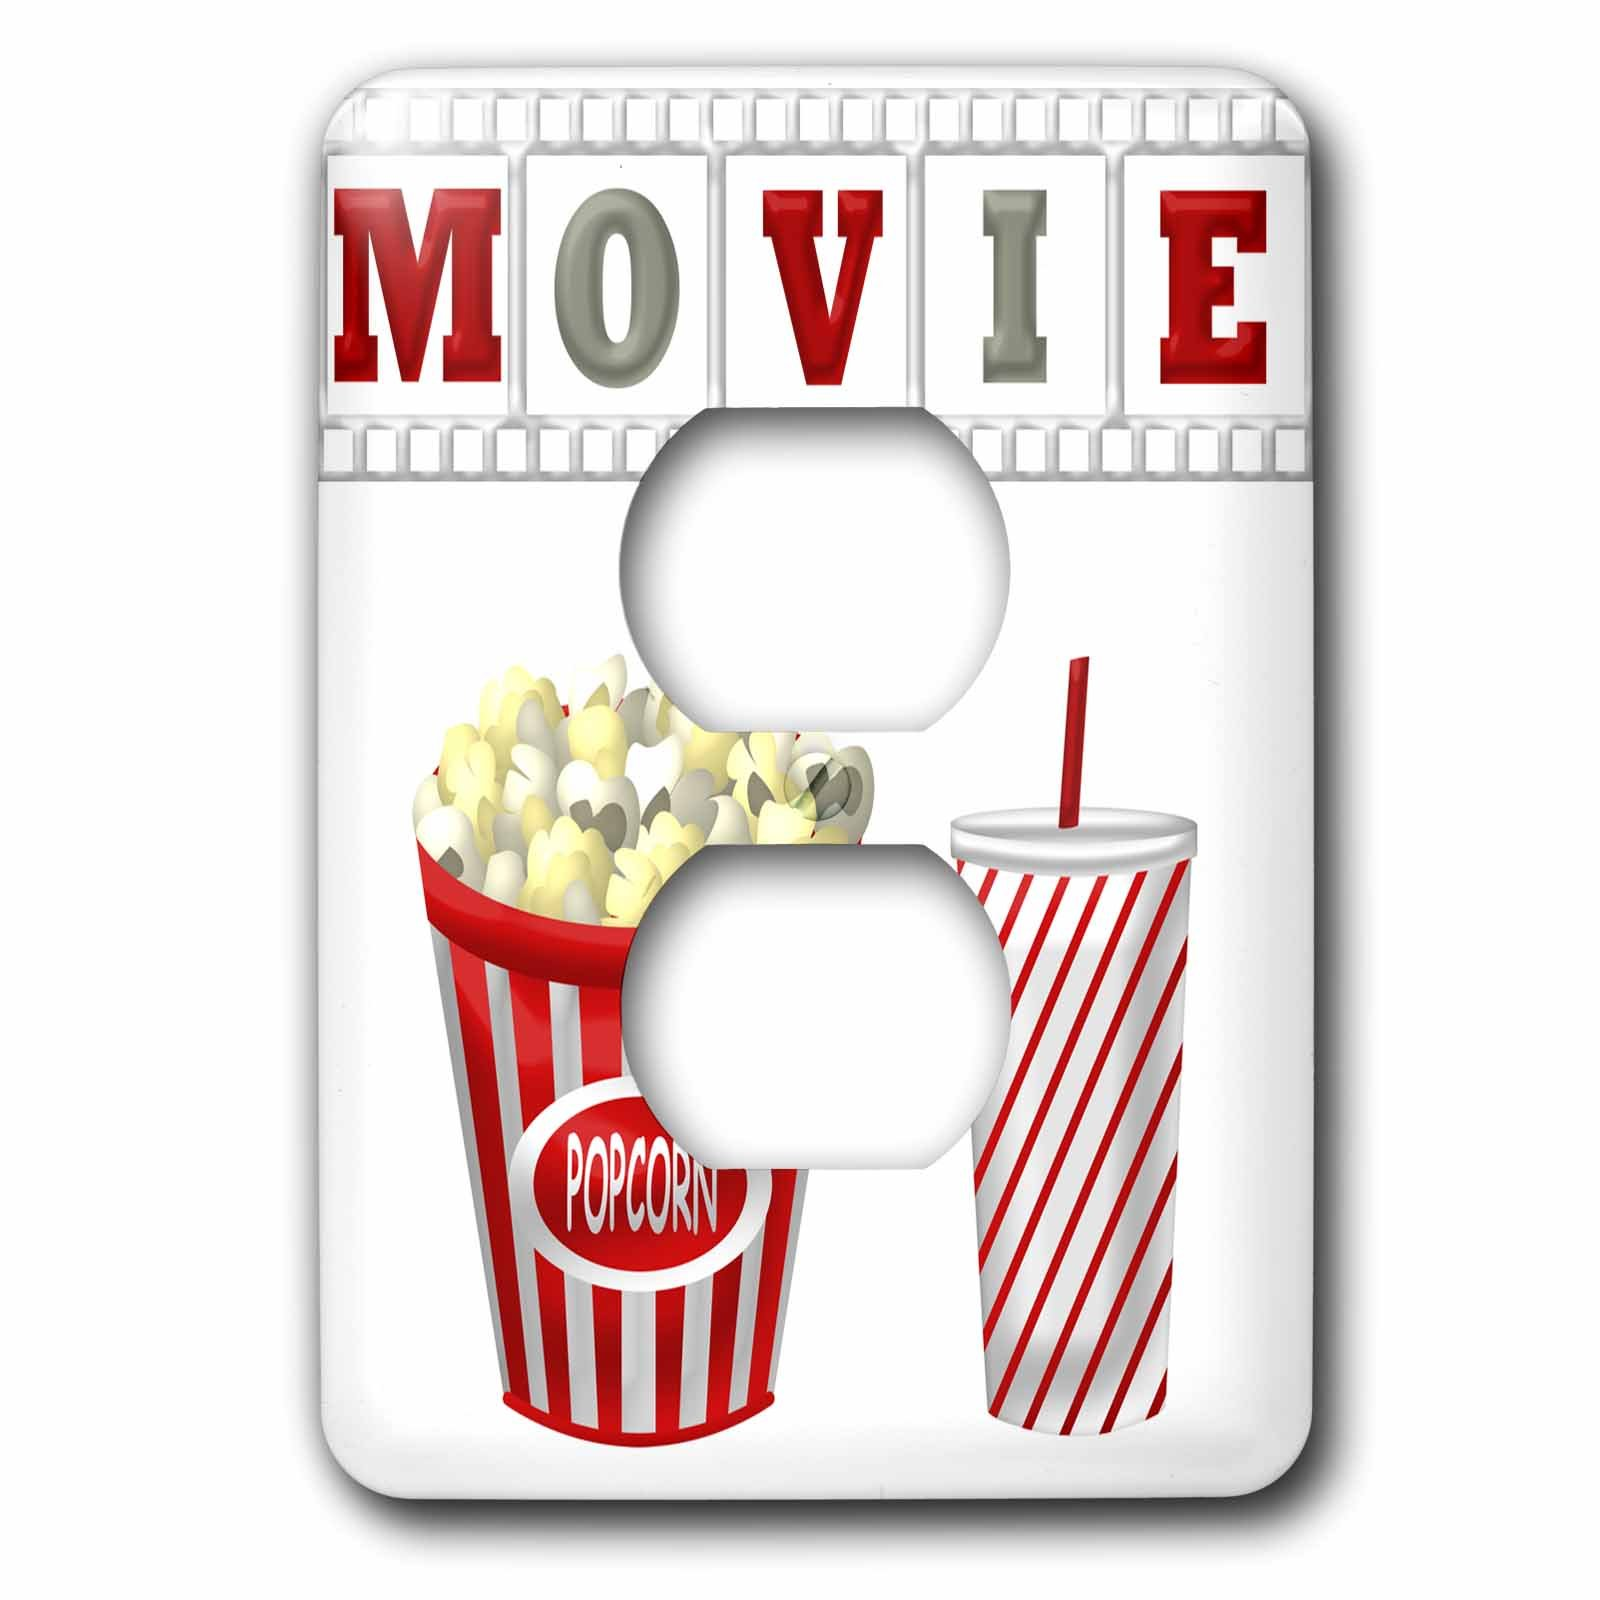 3dRose lsp_222695_6 The Word Movie with Popcorn and Soda Illustration in Red, White, and Gray - 2 Plug Outlet Cover